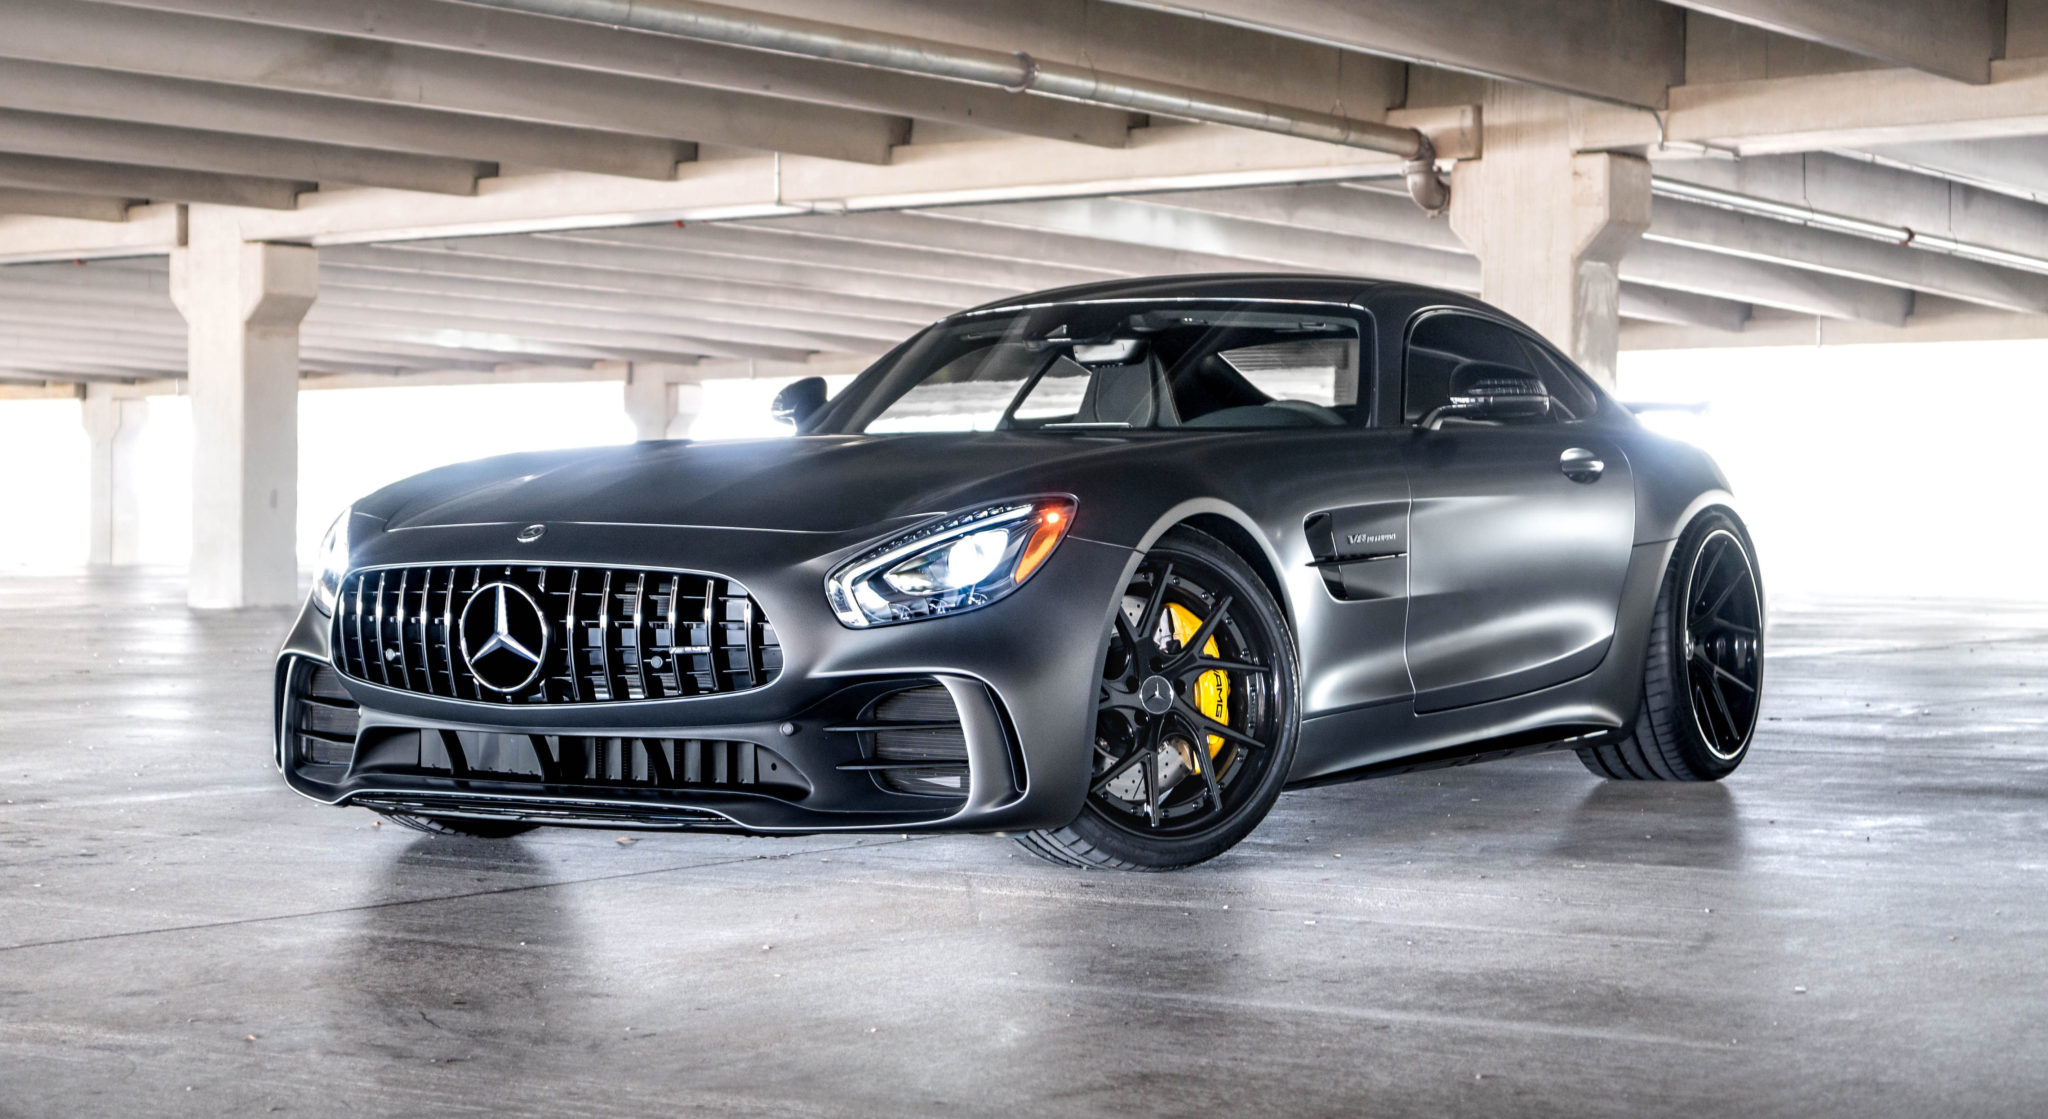 mercedes benz amg gtr sm5rt deep concave fs strasse wheels. Black Bedroom Furniture Sets. Home Design Ideas